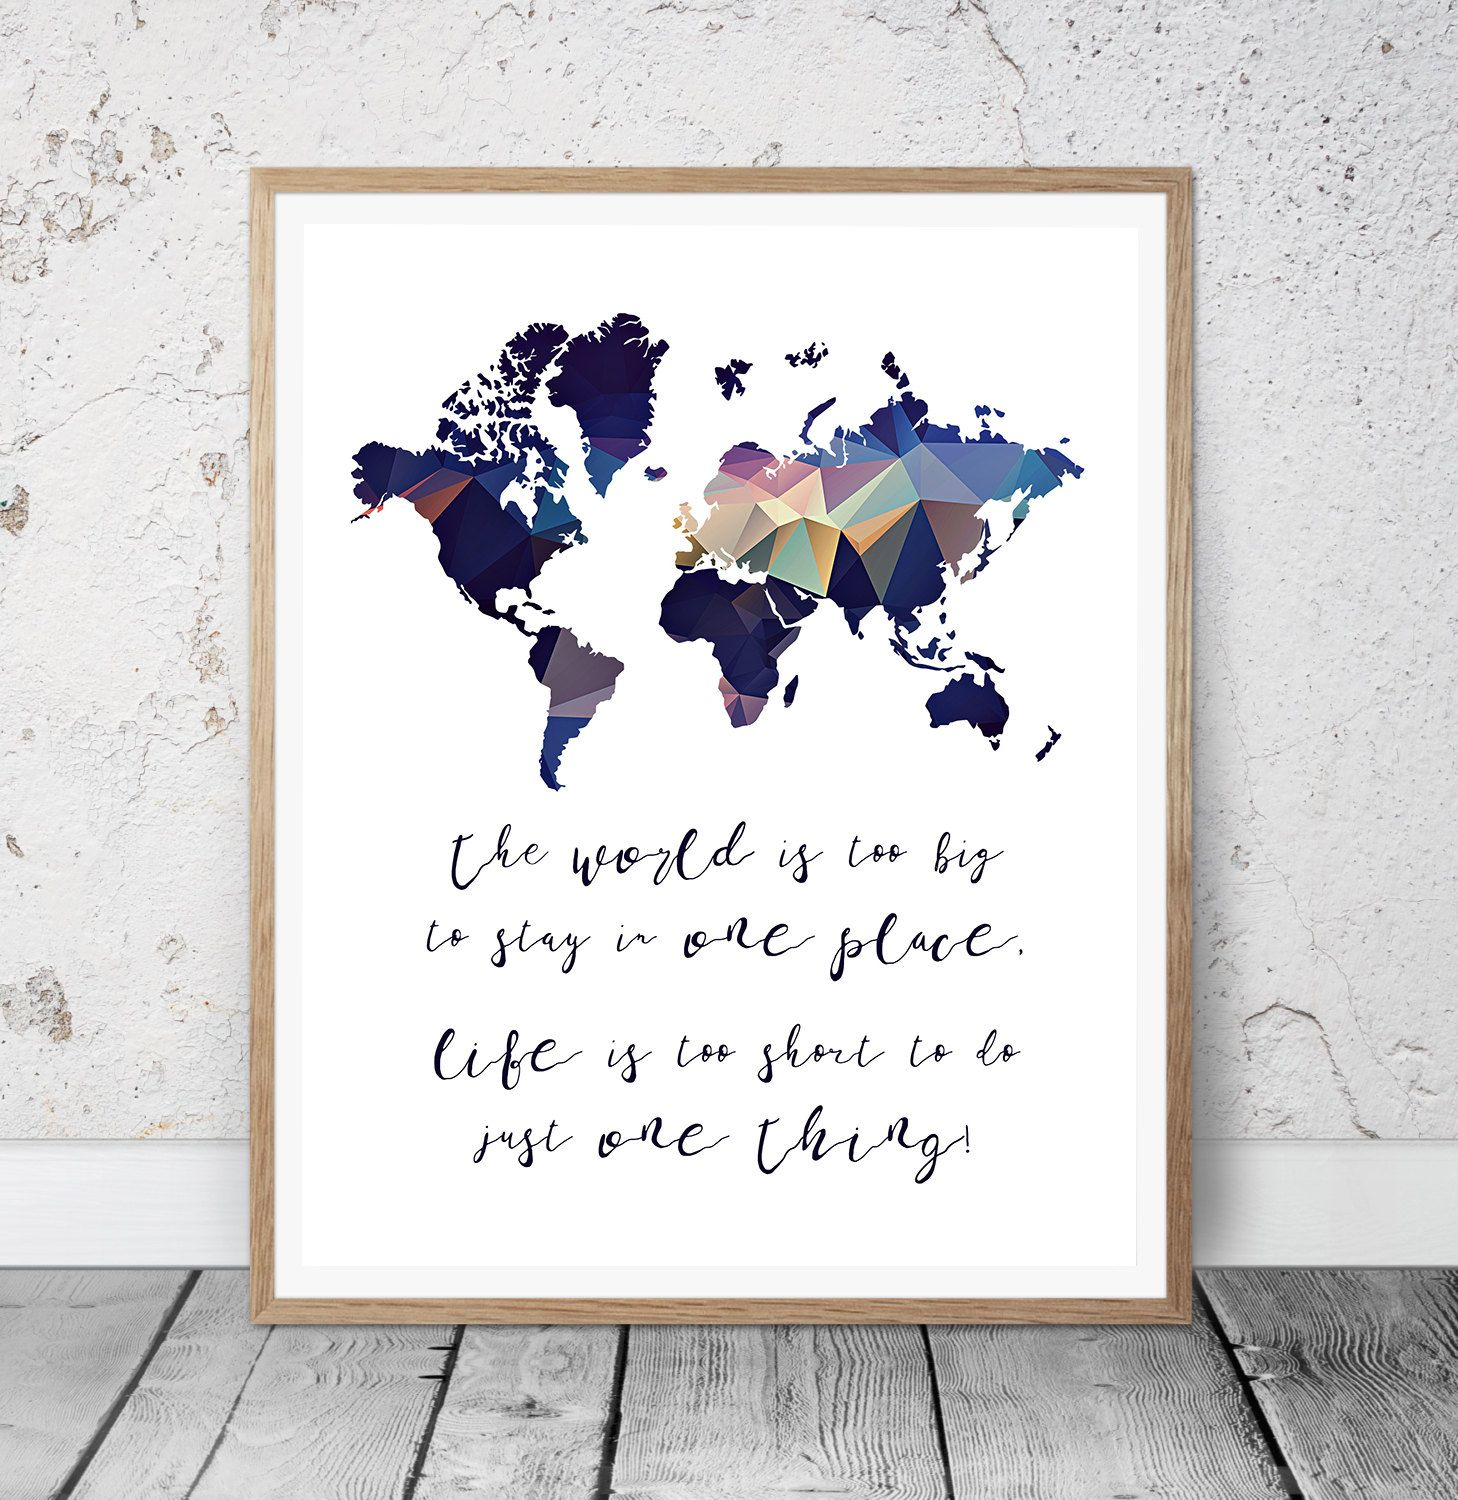 World map printable wall art world map print world map poster world map printable wall art world map print world map poster world is too big to stay in one place world map home decor sciox Image collections